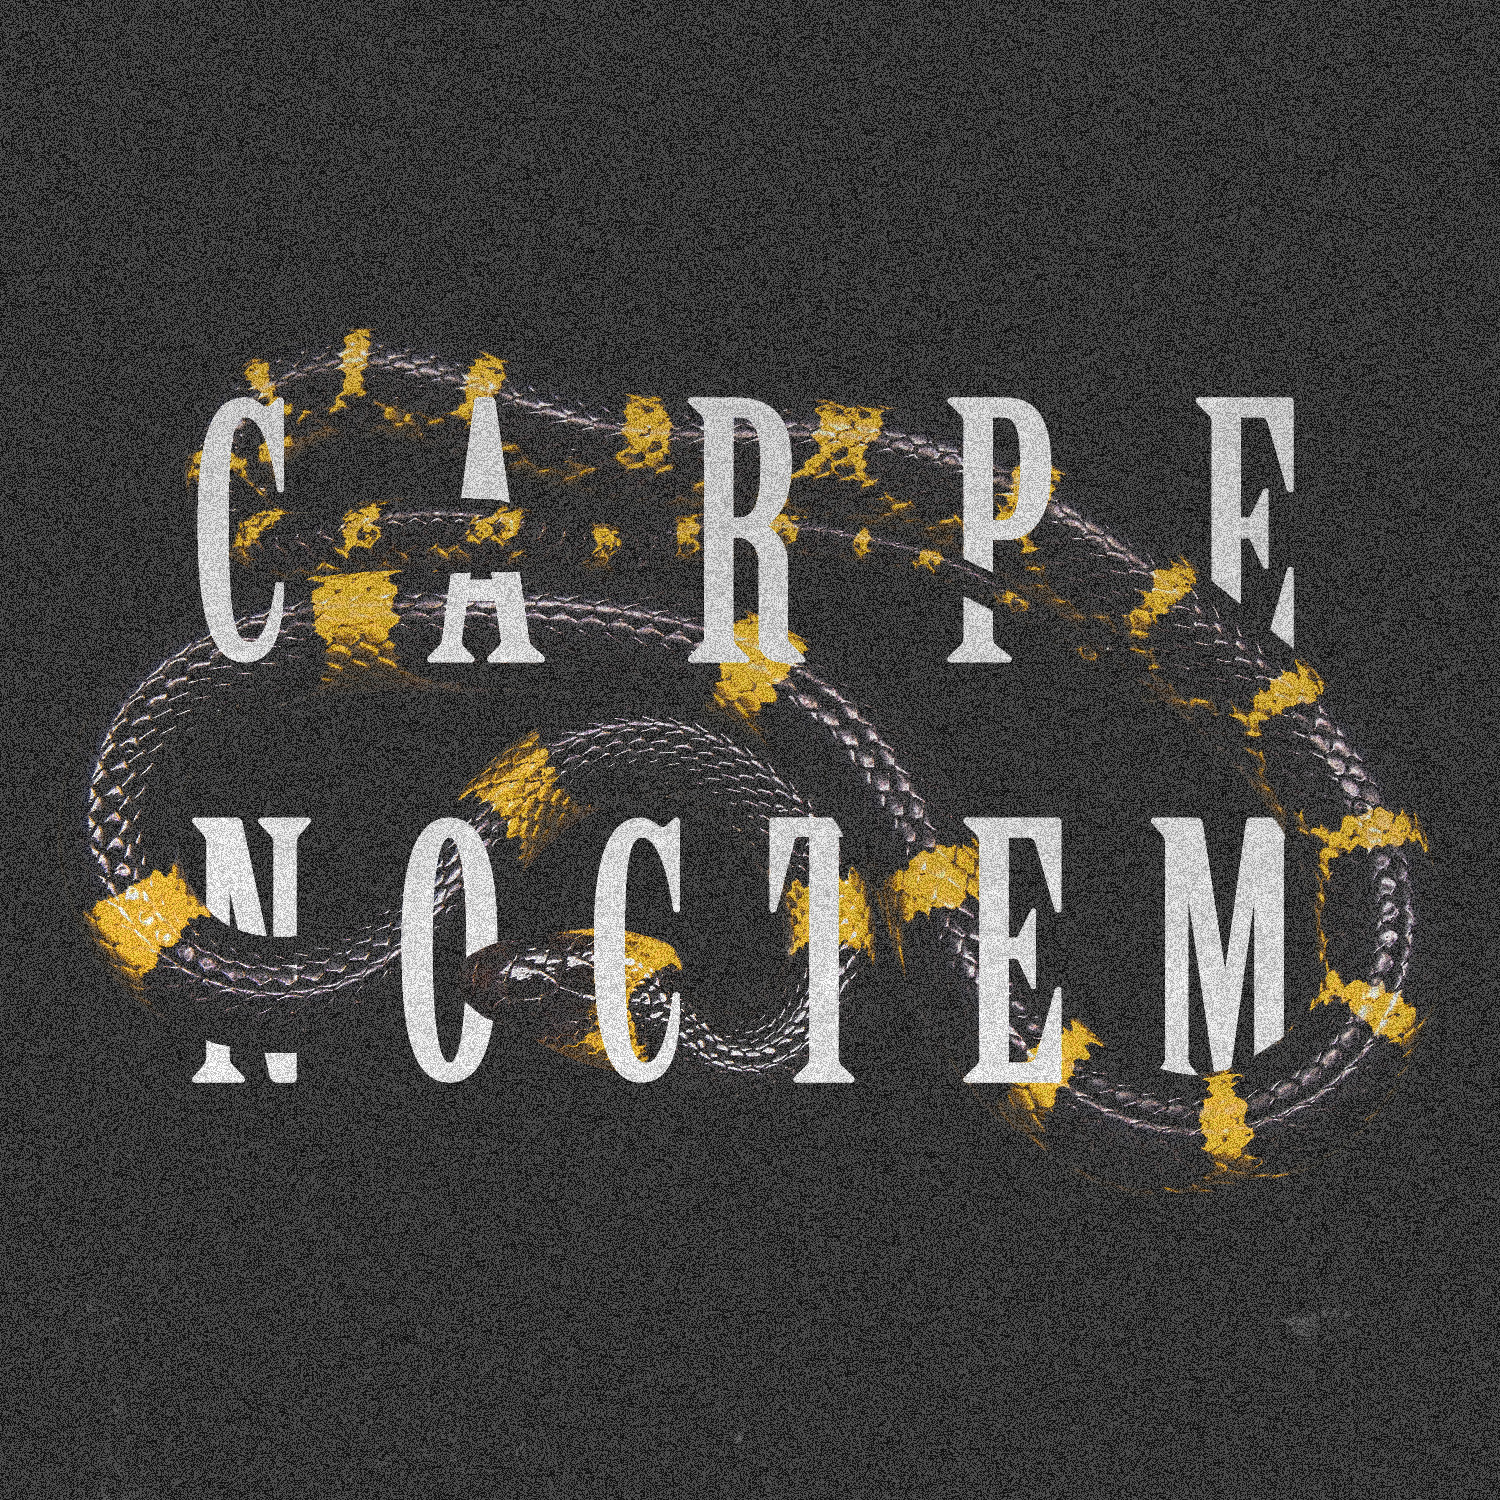 seize night ~ - photoshop, typography - sarathecreator | ello